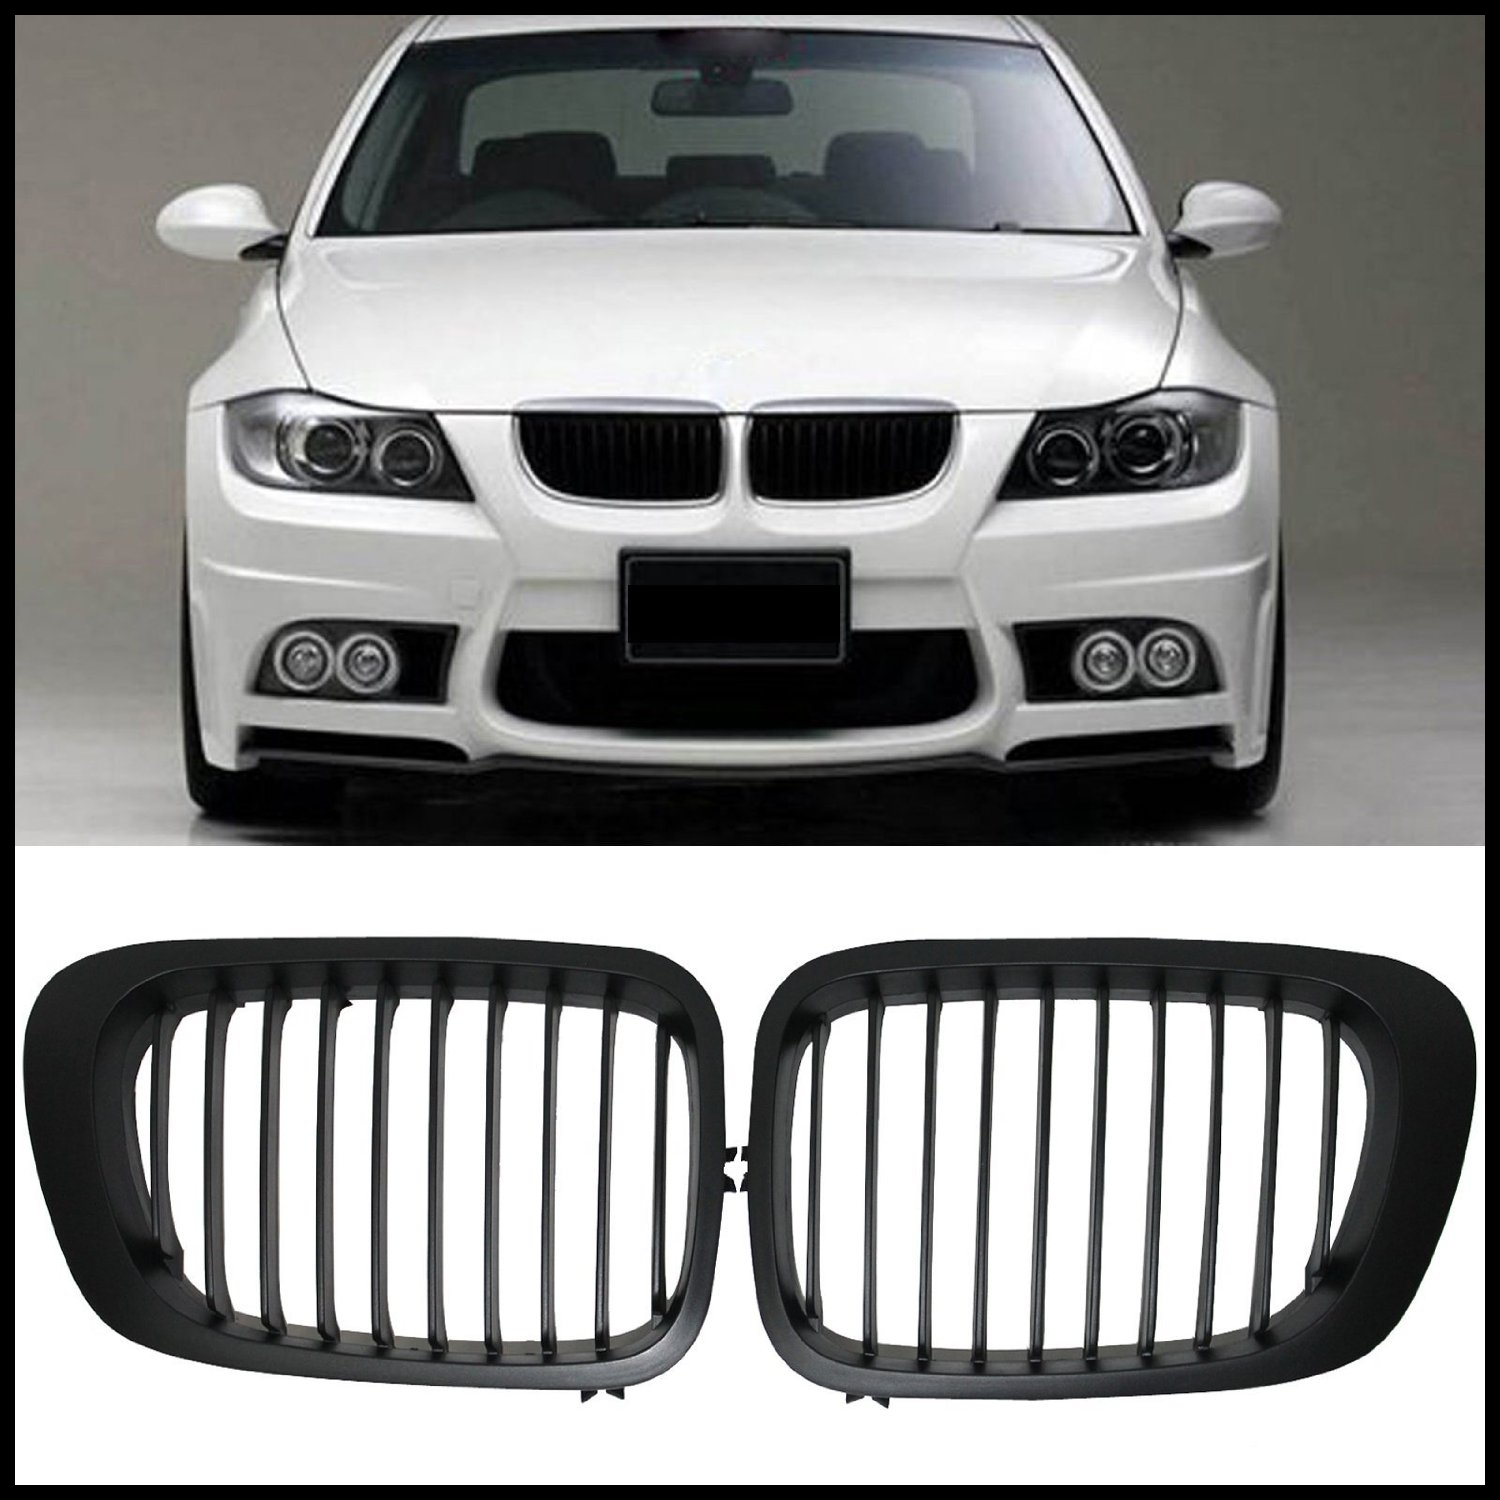 Get Quotations · Black Front Kidney Grill Grilles for BMW 3 Series E46 325Ci 2 Door 1999 2002